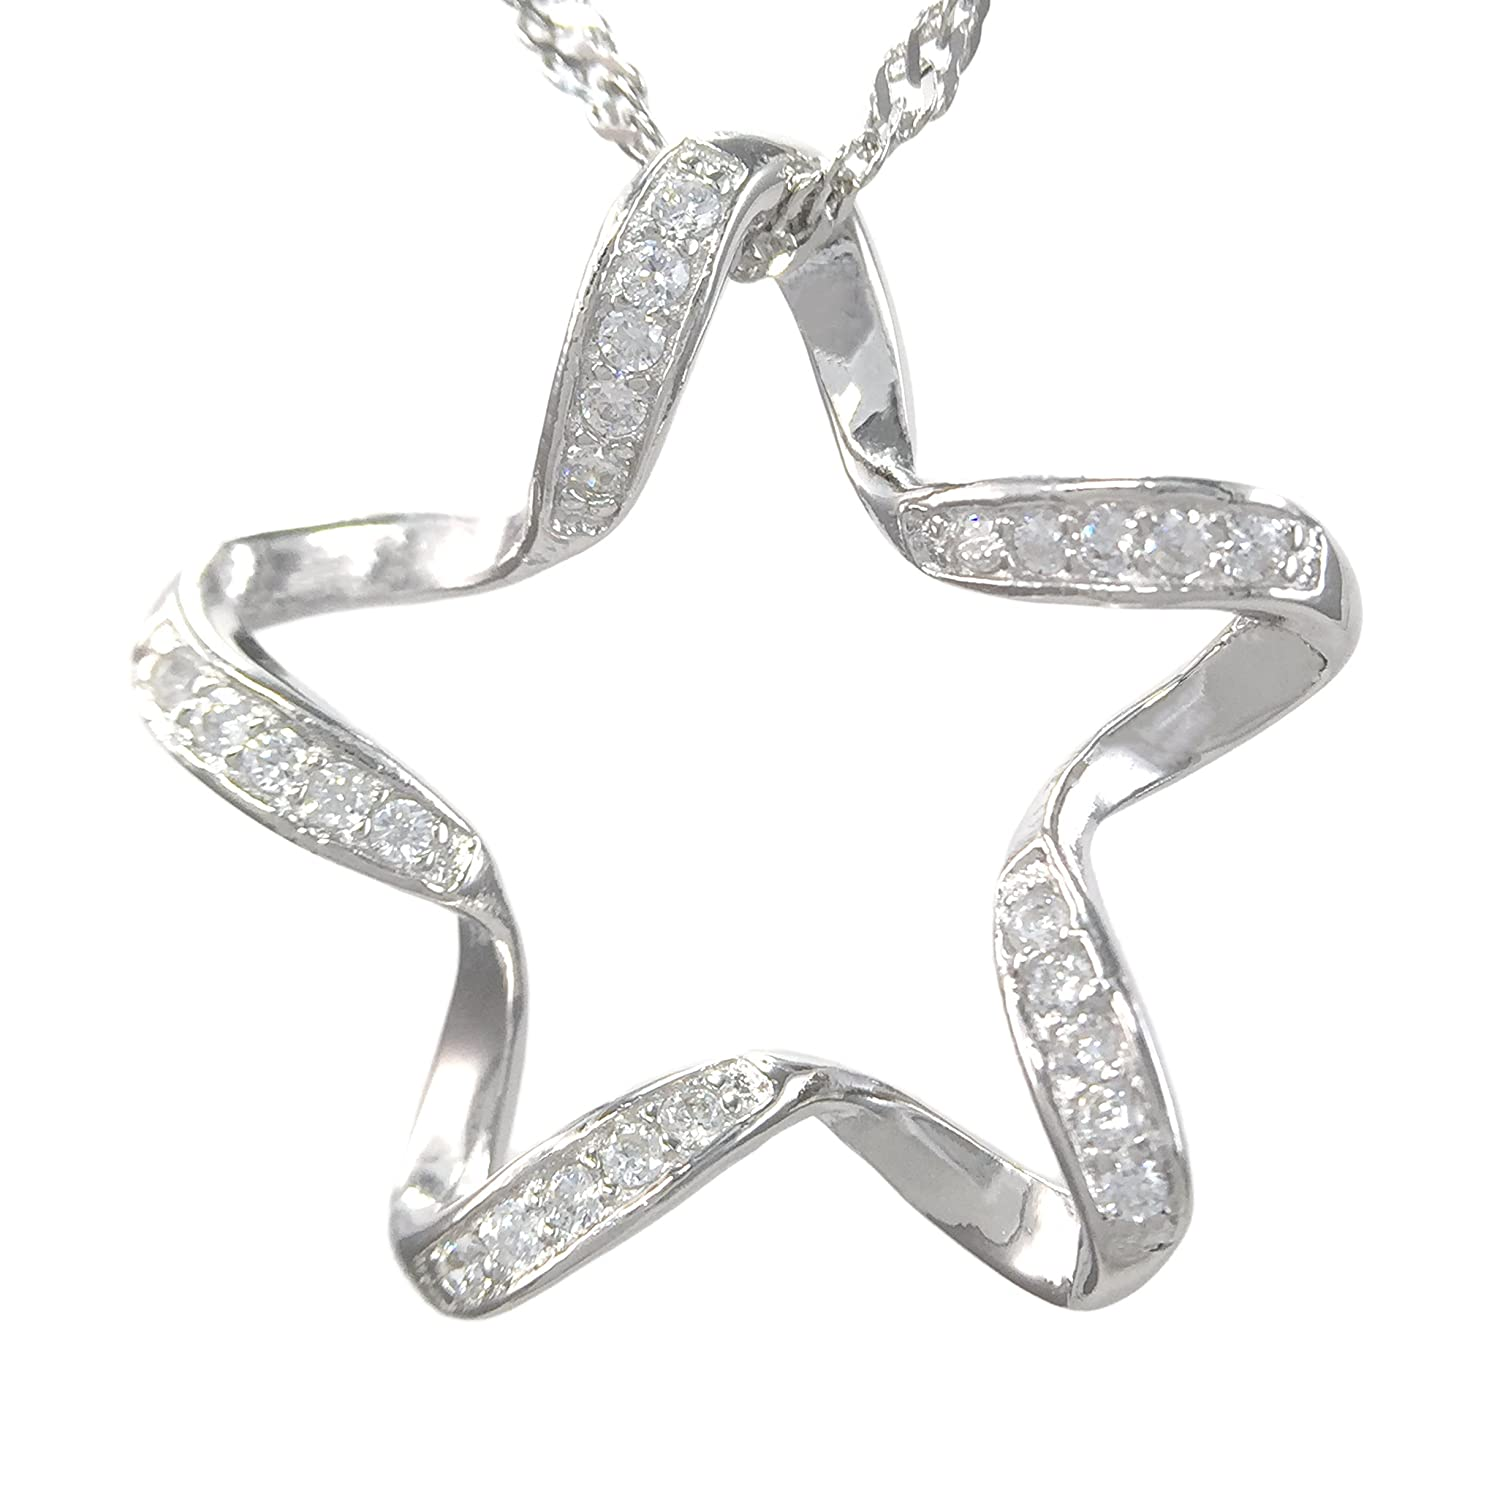 Make a Wish Lucky Star Sterling Silver Pendant Necklace